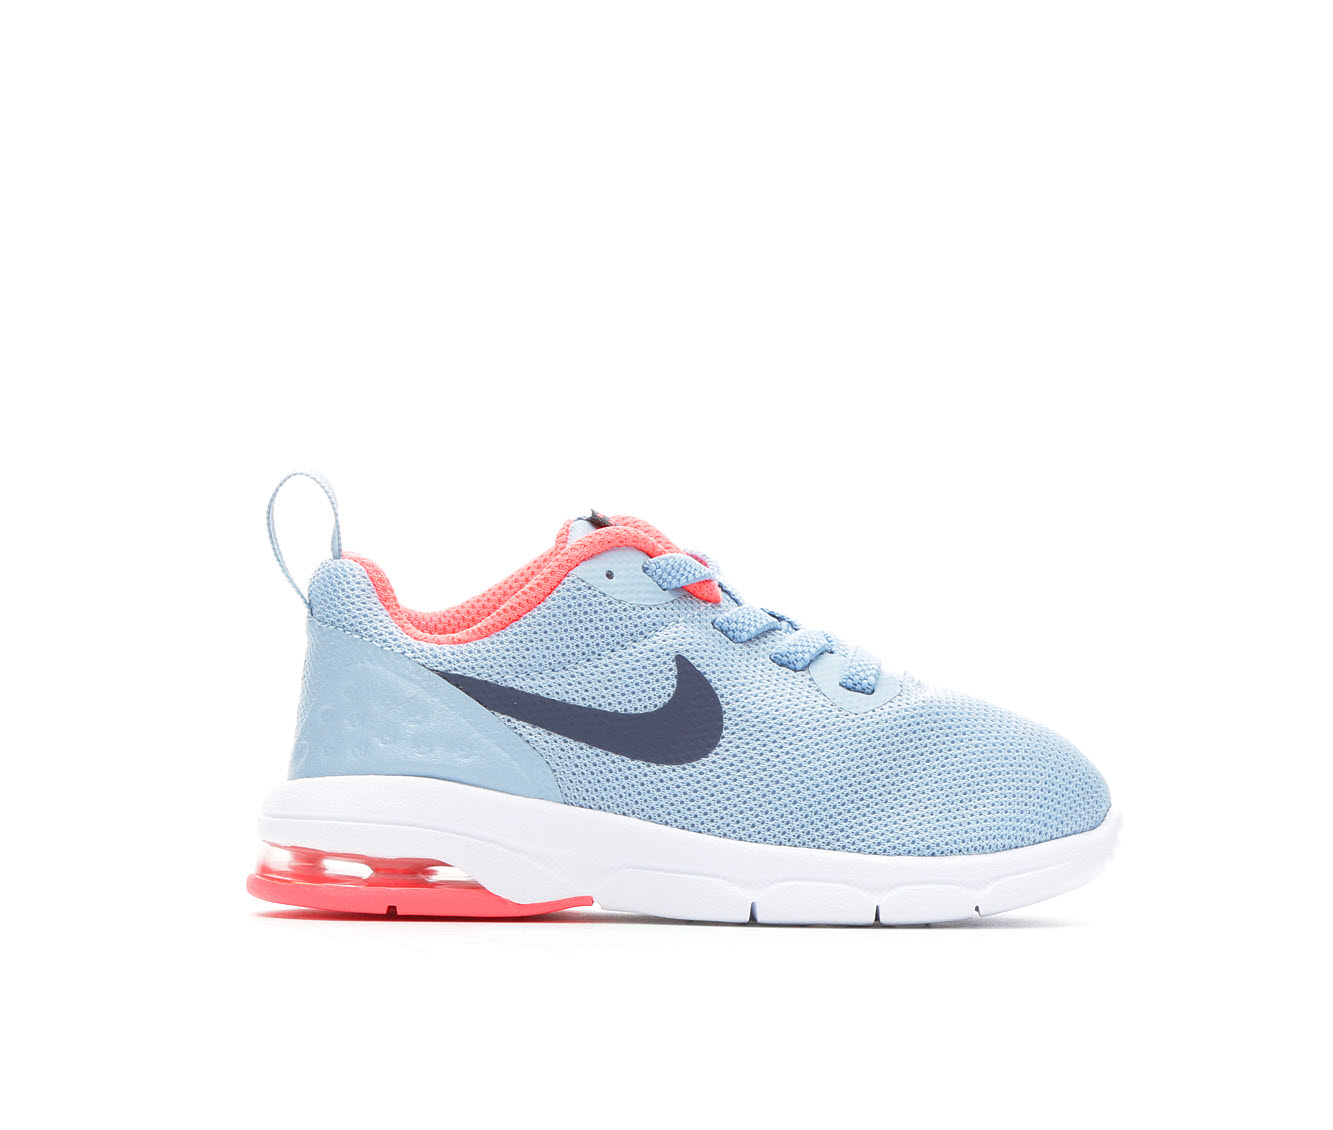 Girls' Nike Infant Air Max Motion Low Sneakers (Blue)